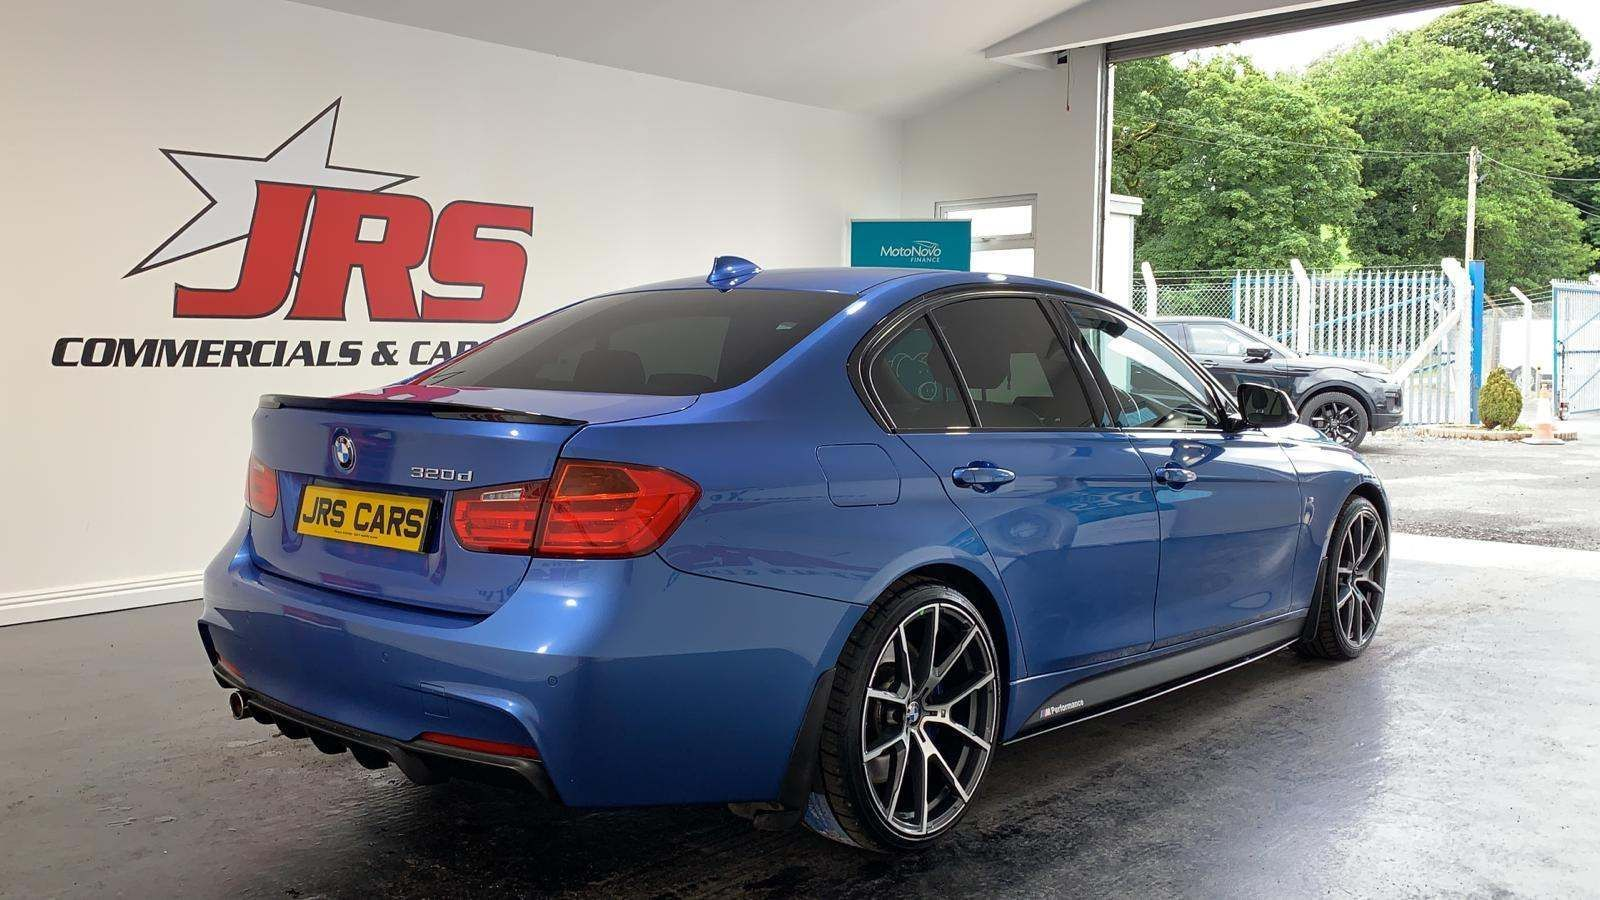 2015 BMW 3 Series 2.0 320d BluePerformance M Sport (s/s) Diesel Manual Xenons-Heated Seats-Sat Nav – J R S Commercials And Cars Dungannon full